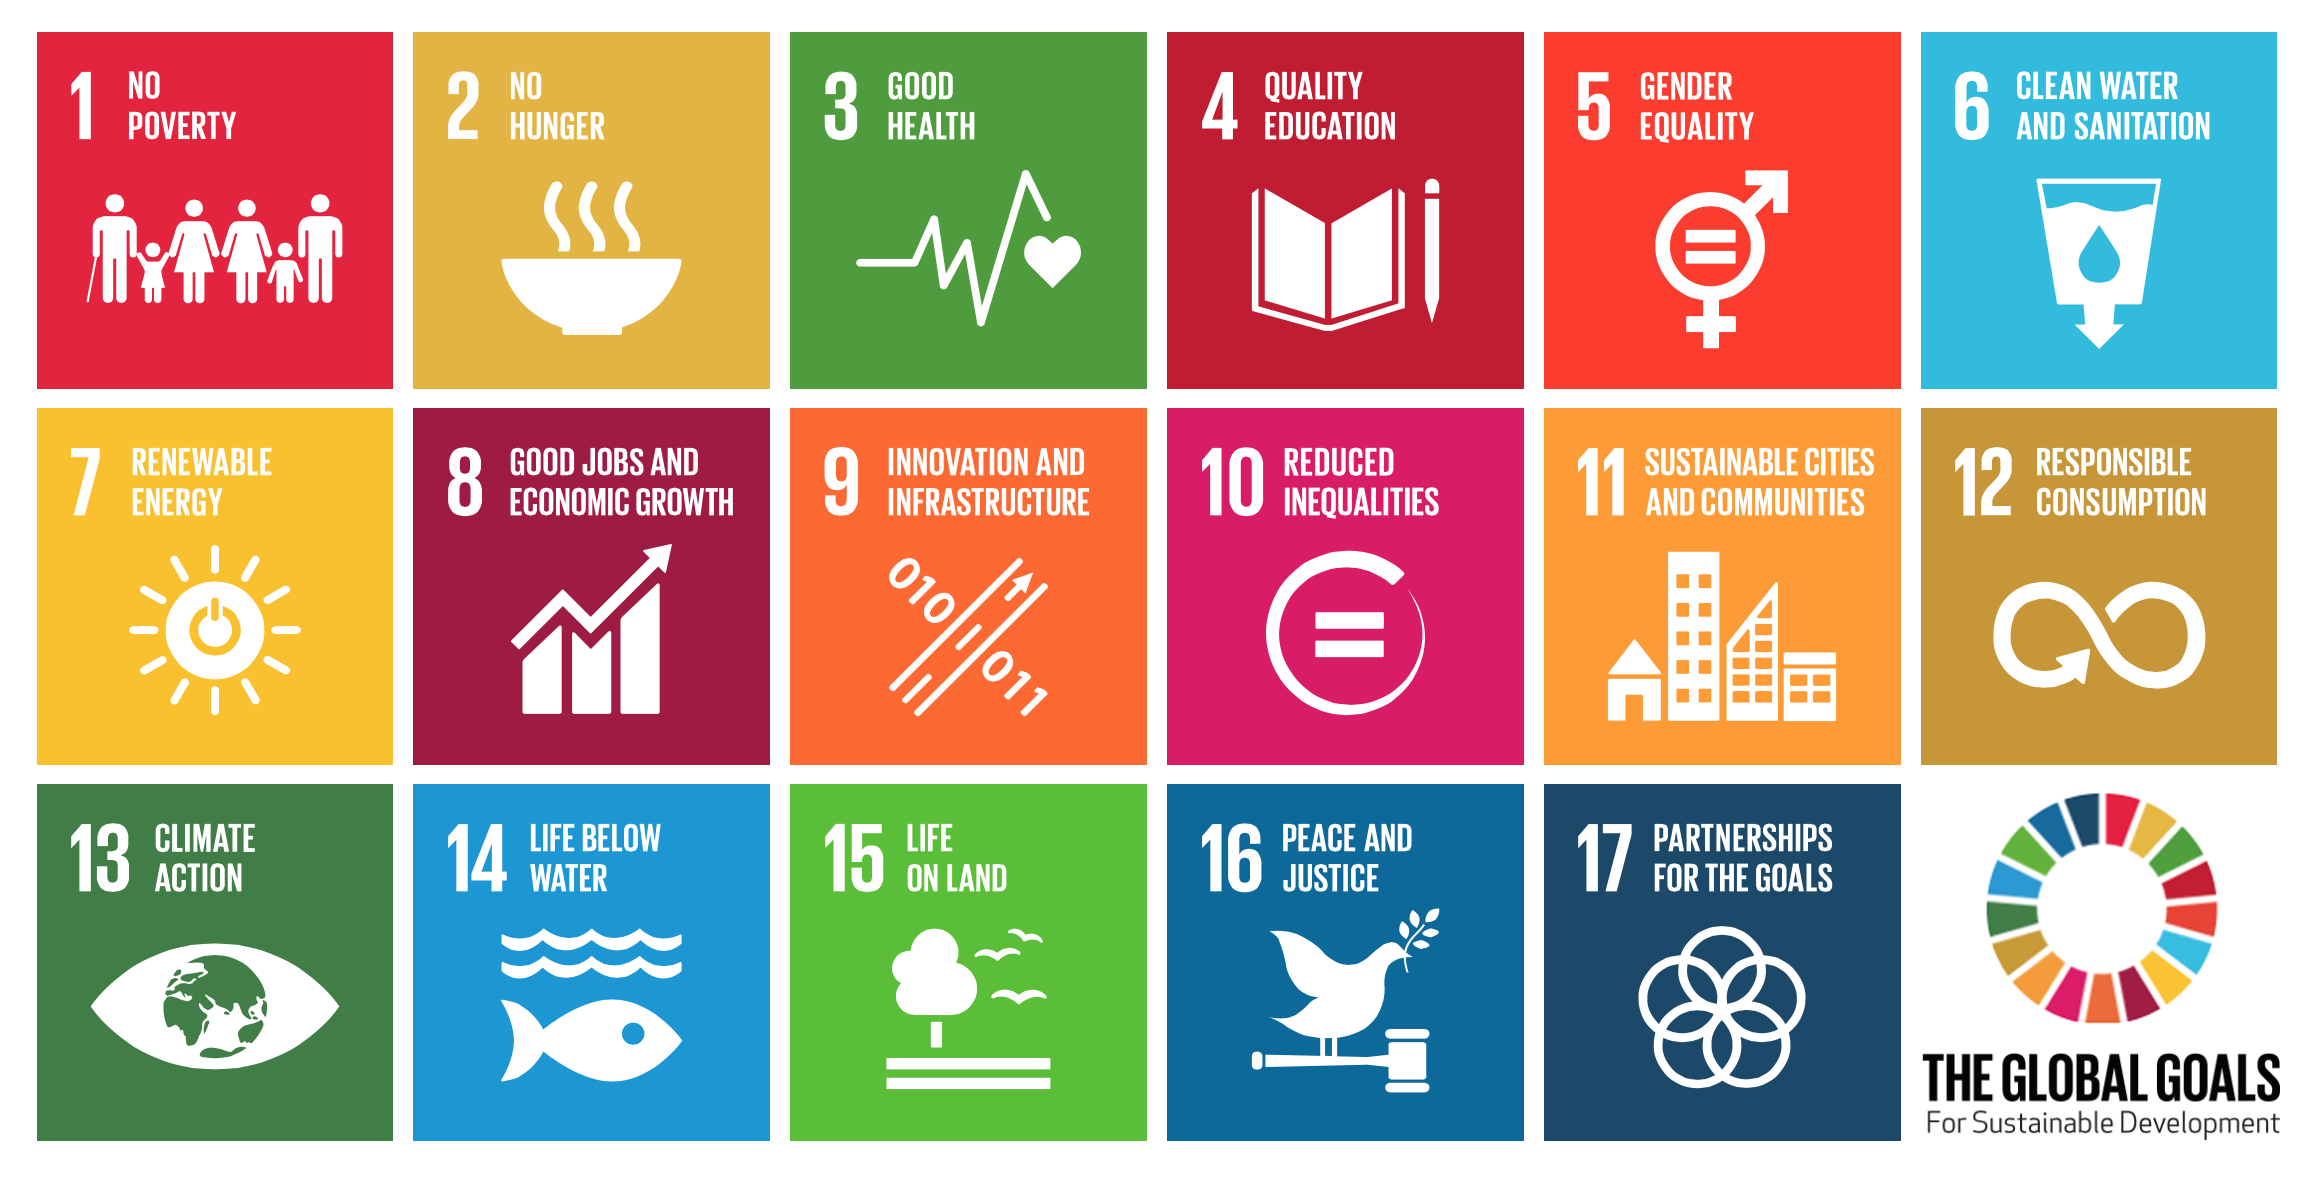 sustainable development goals - chart